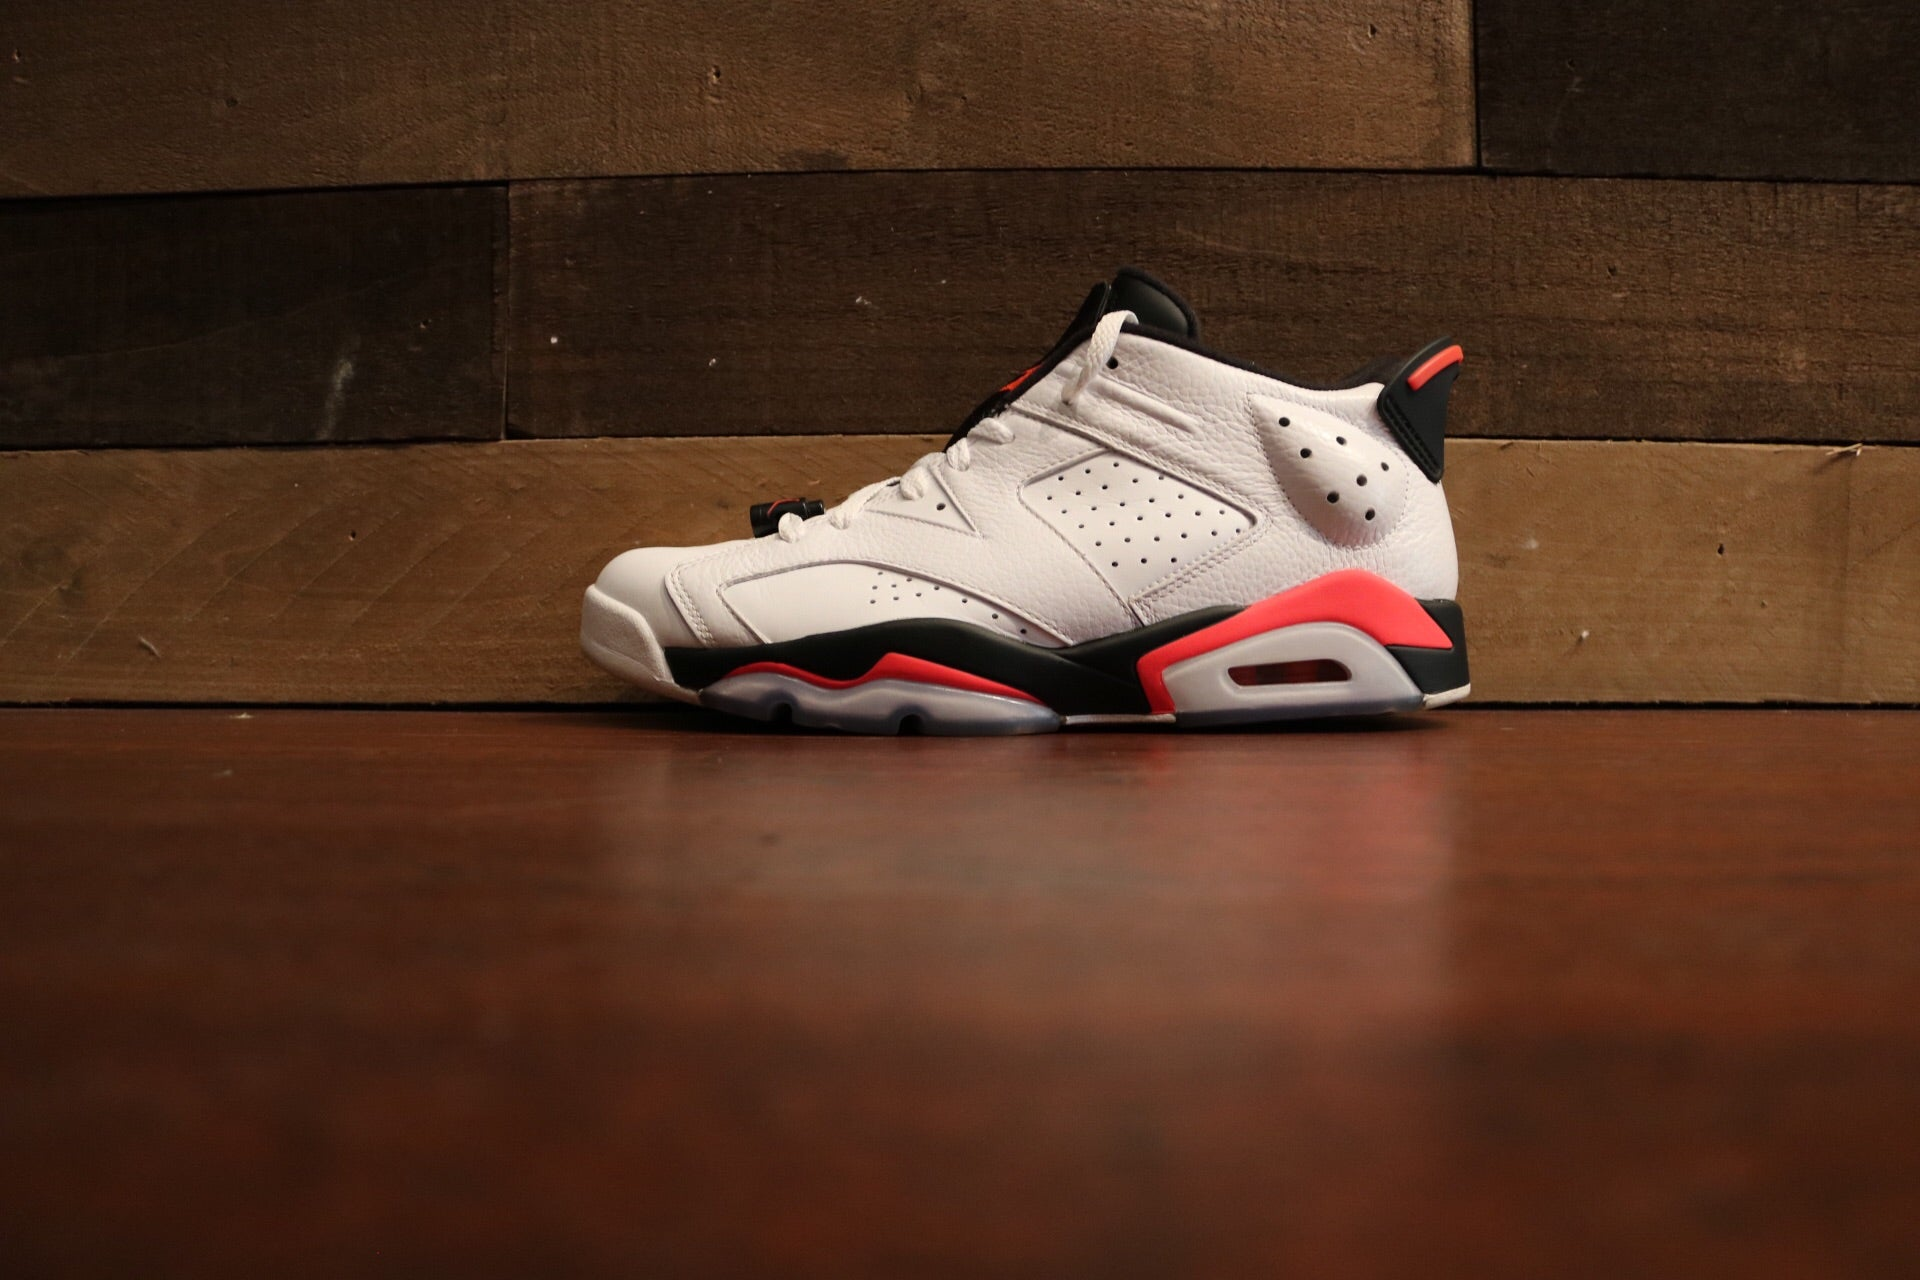 4c905d760fb9b6 Jordan 6 Retro Low Infrared White (u)